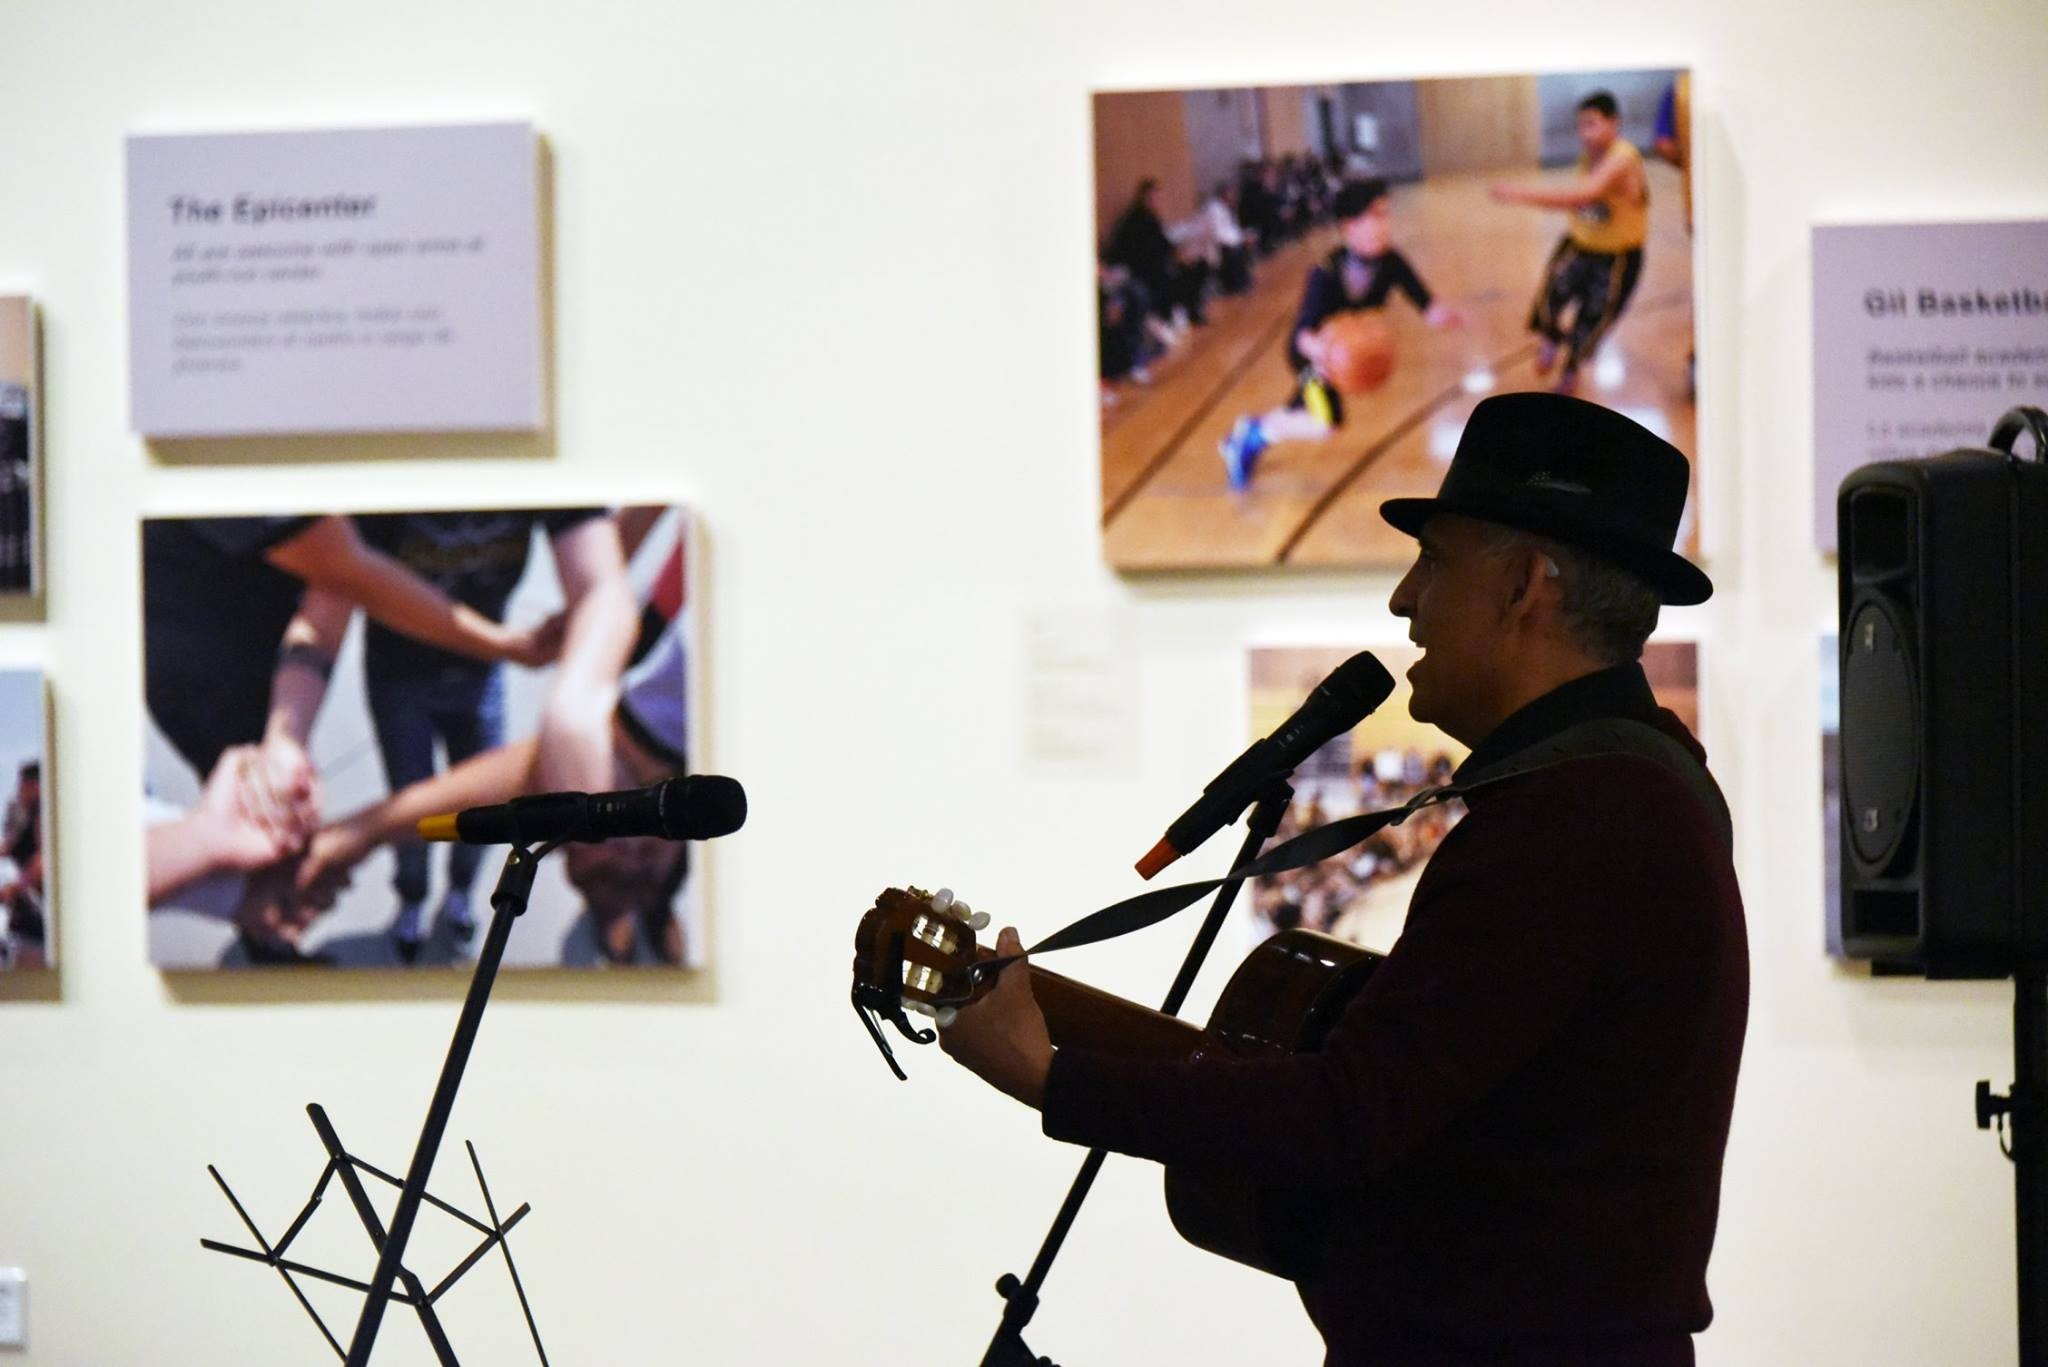 Man singing and playing guitar in a art gallery